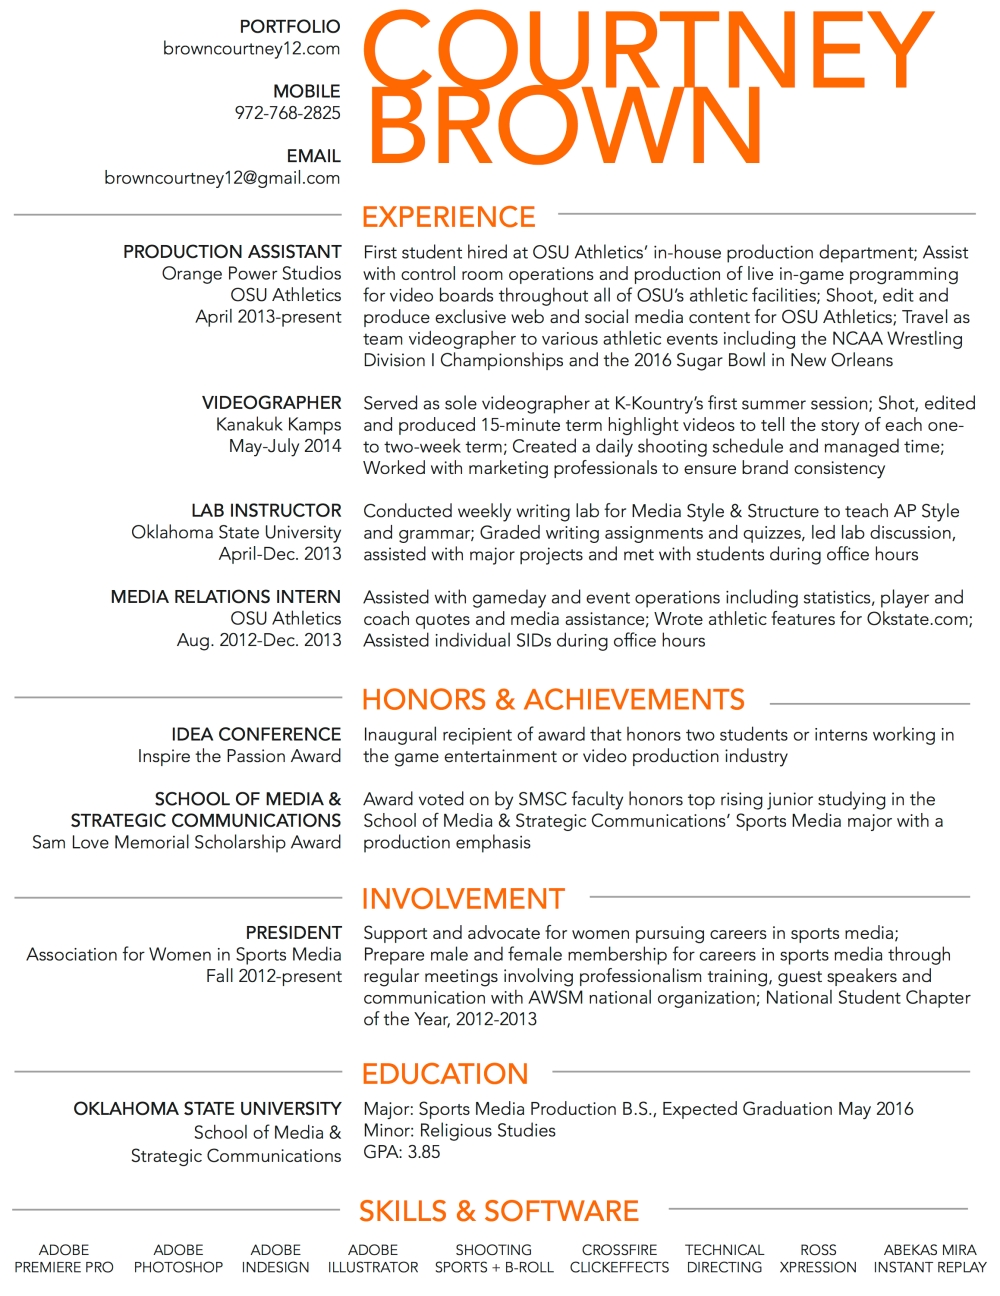 Courtney Brown Resume 030716